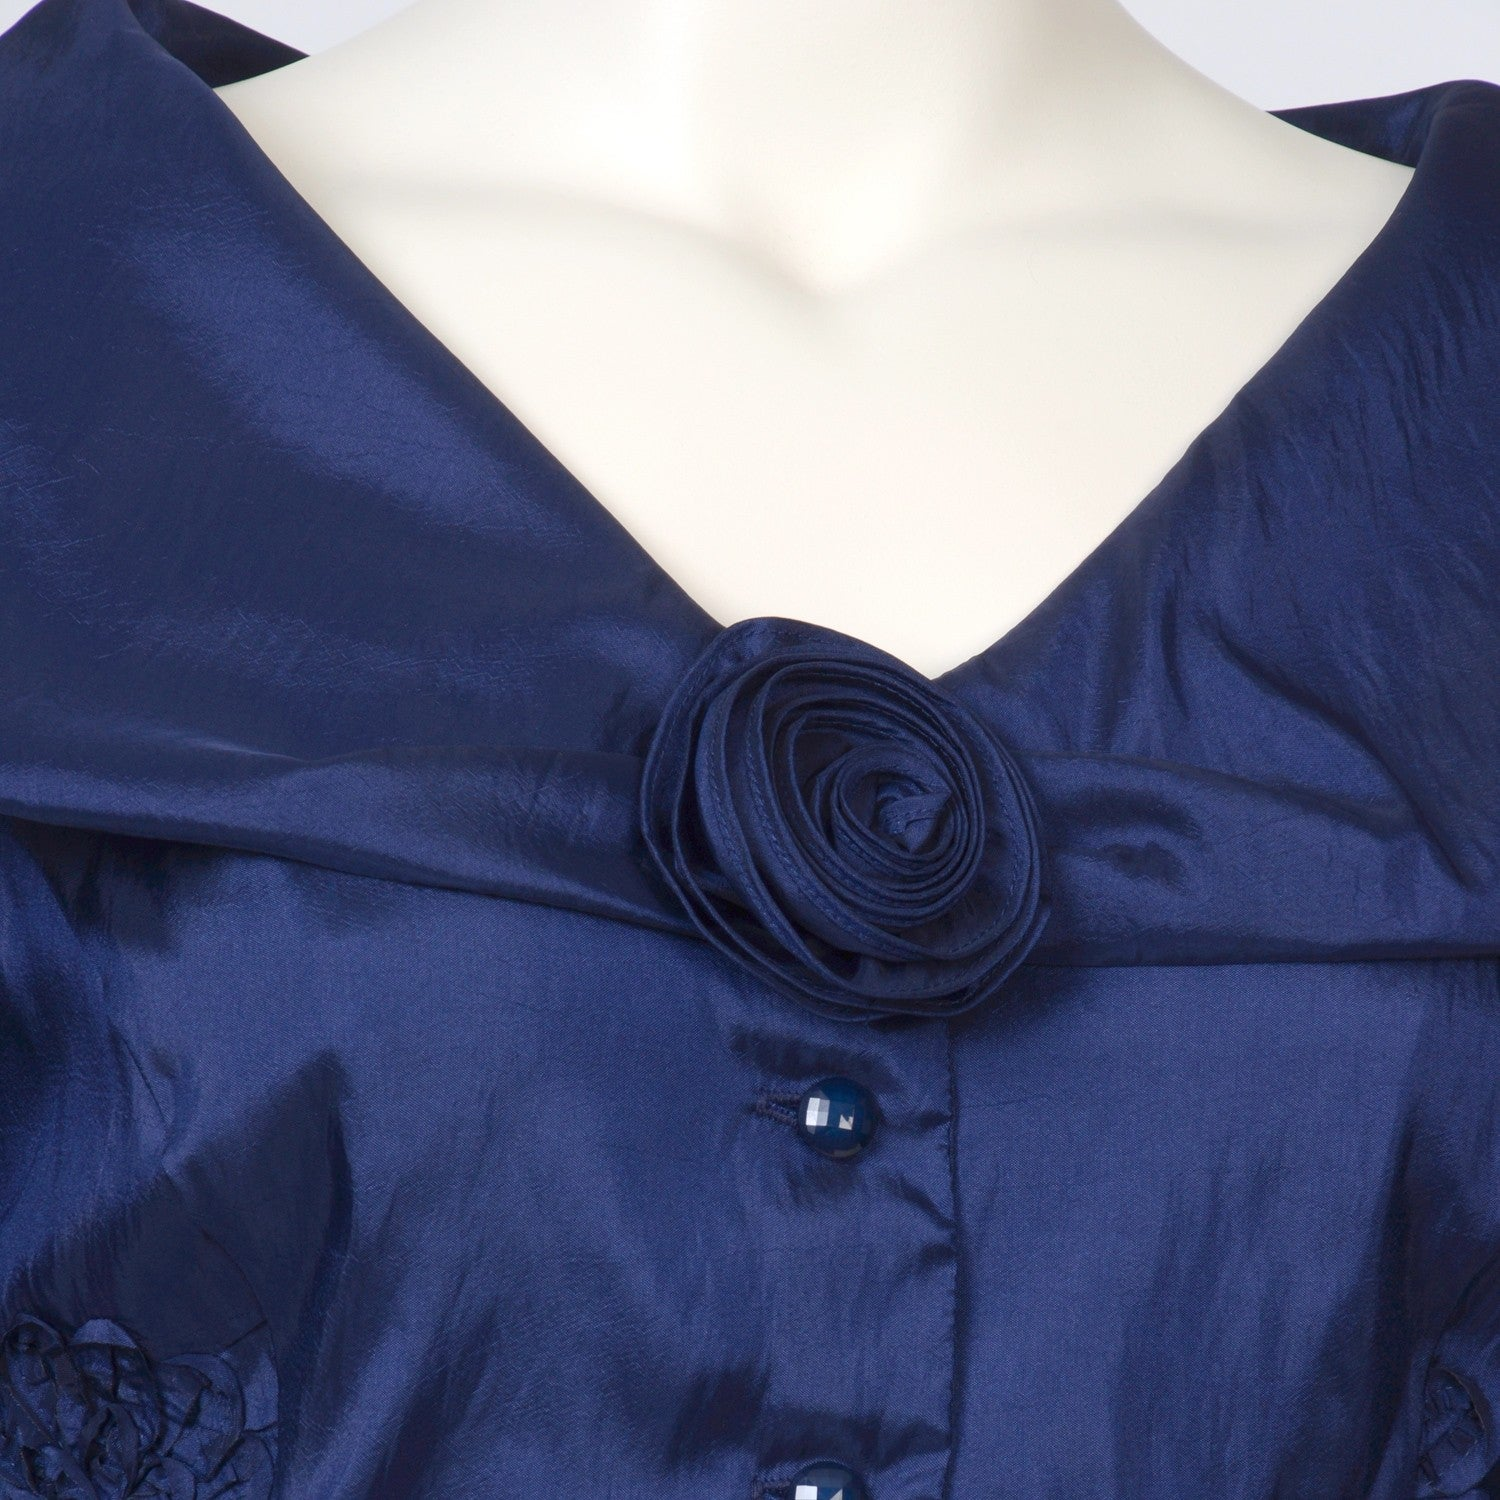 f67fcd97af67a Shop Onyx Nites Women s Plus Size Portrait Collar Taffeta Top - Free  Shipping Today - Overstock - 6193557